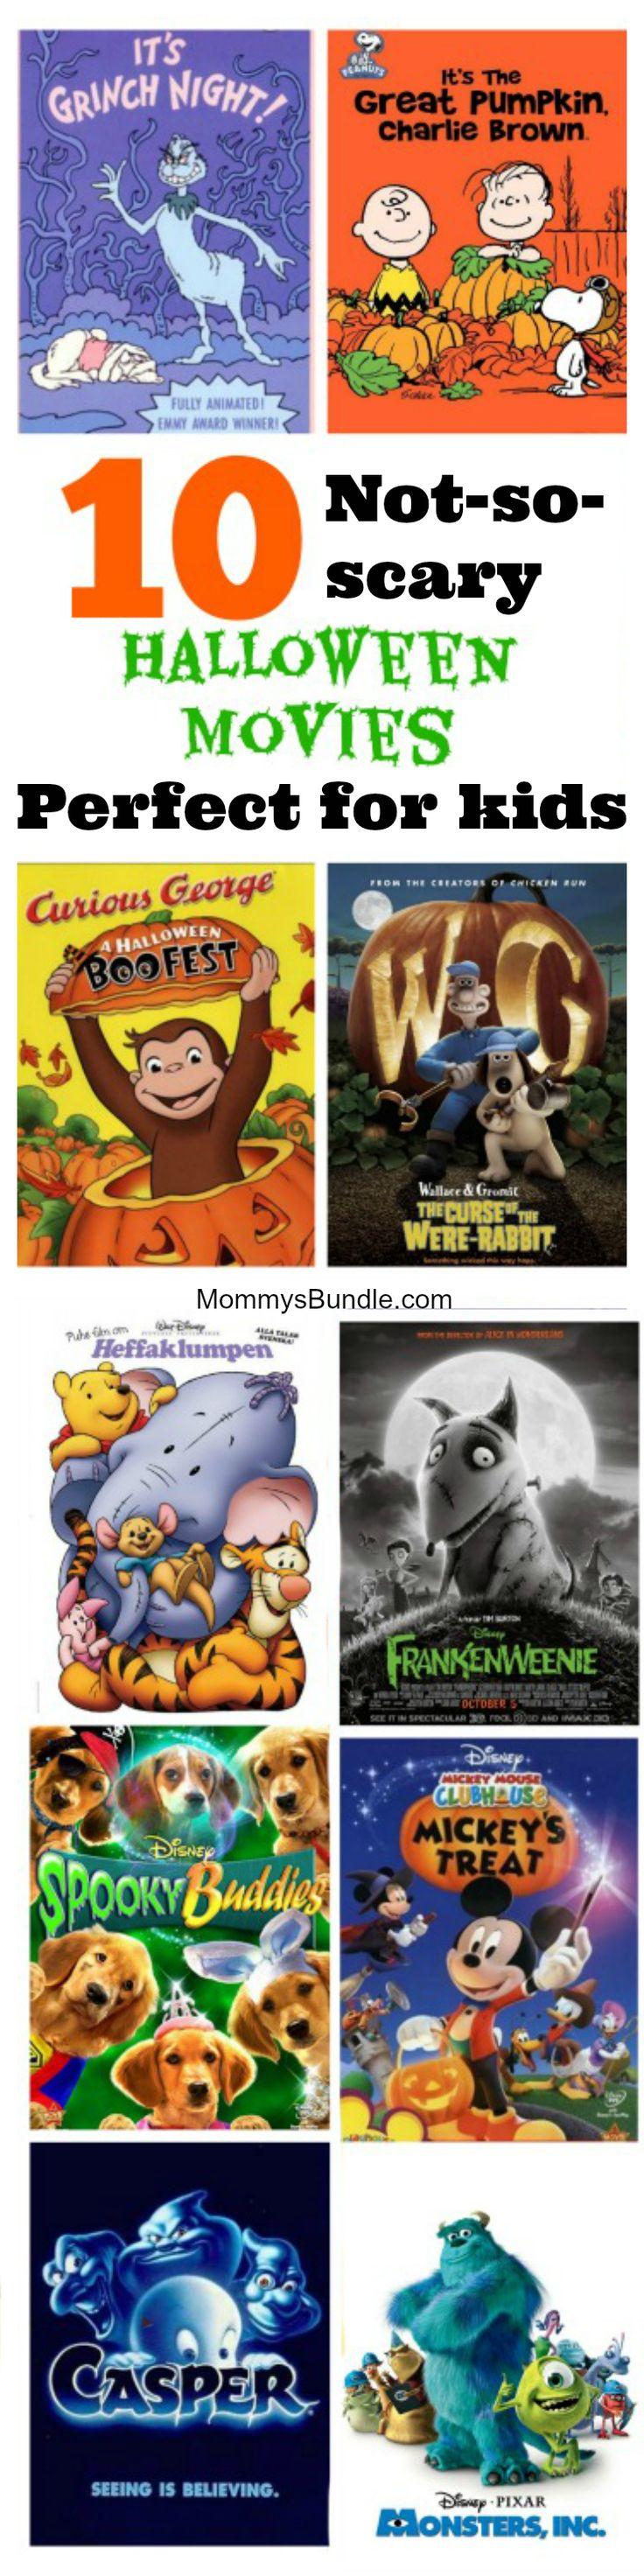 The BEST Halloween movies for little kids! Whether it's for a scary movie night or party, here's our top movie picks, toddlers and preschoolers can have fun watching!